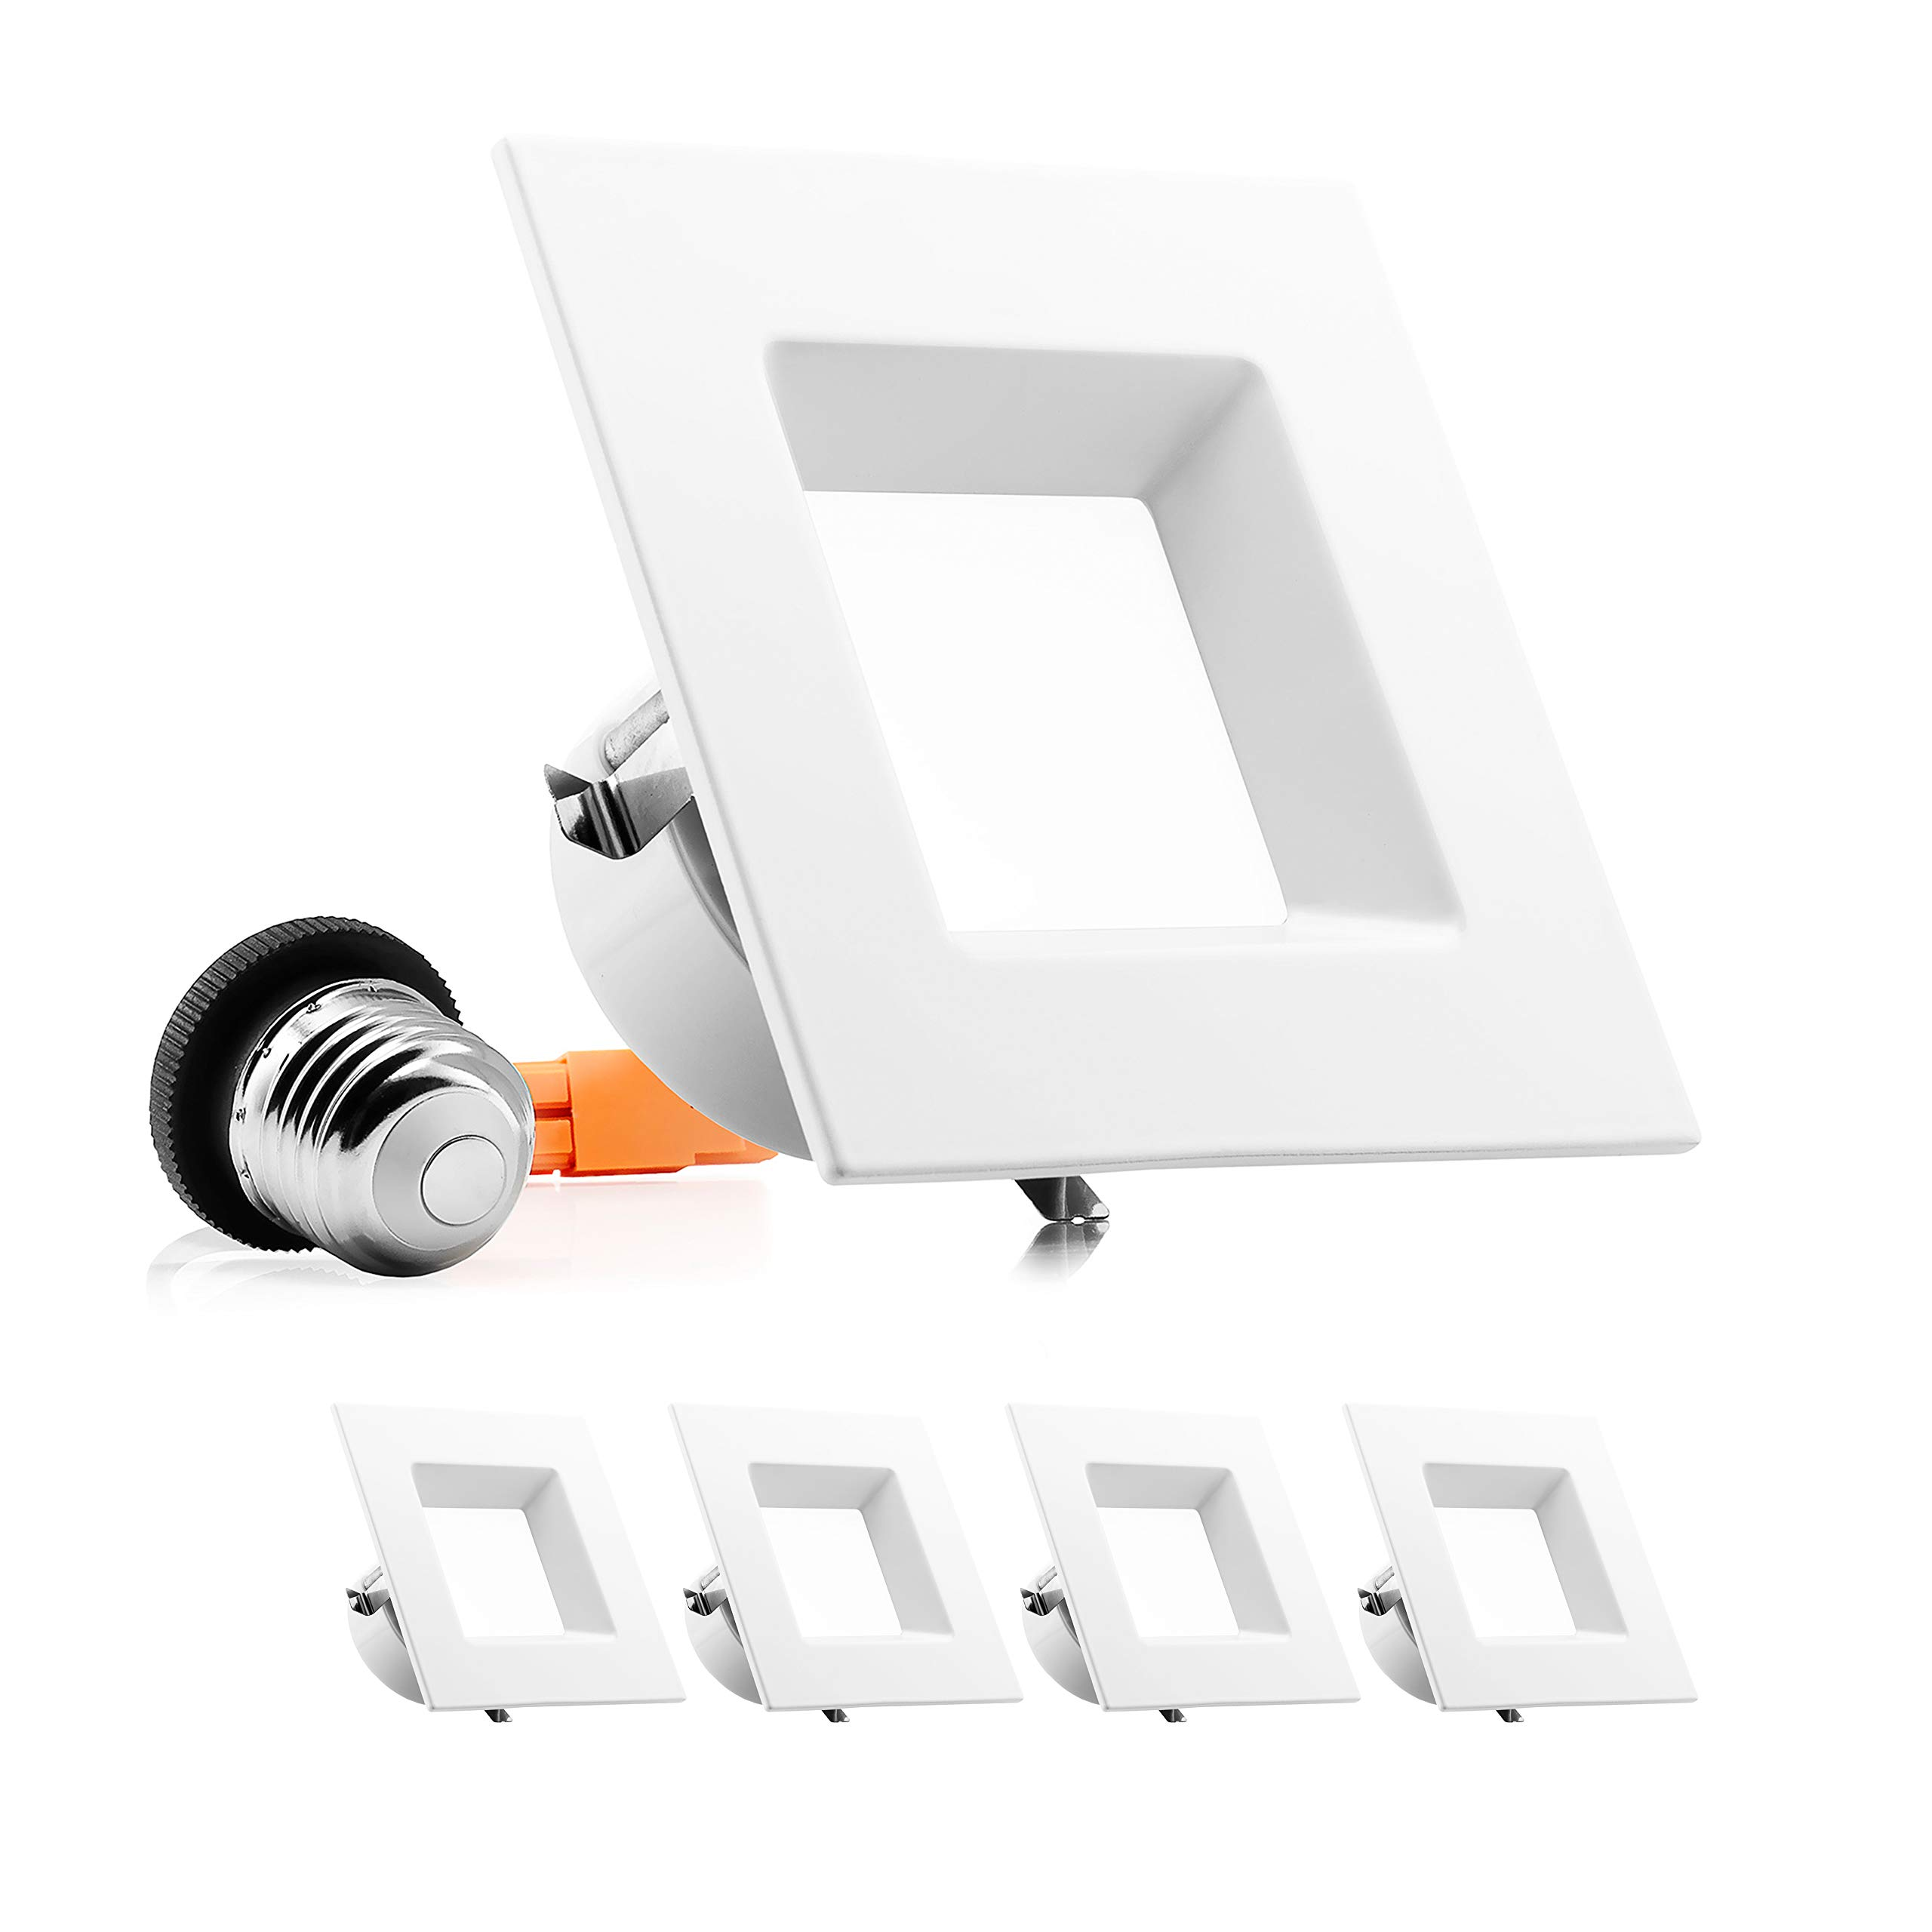 Parmida (4 Pack) 4 inch Dimmable LED Retrofit Recessed Downlight, 10W (60W Replacement), Square Trim, 5000K (Day Light), 630LM, ENERGY STAR & ETL, LED Ceiling Can Light Fixture